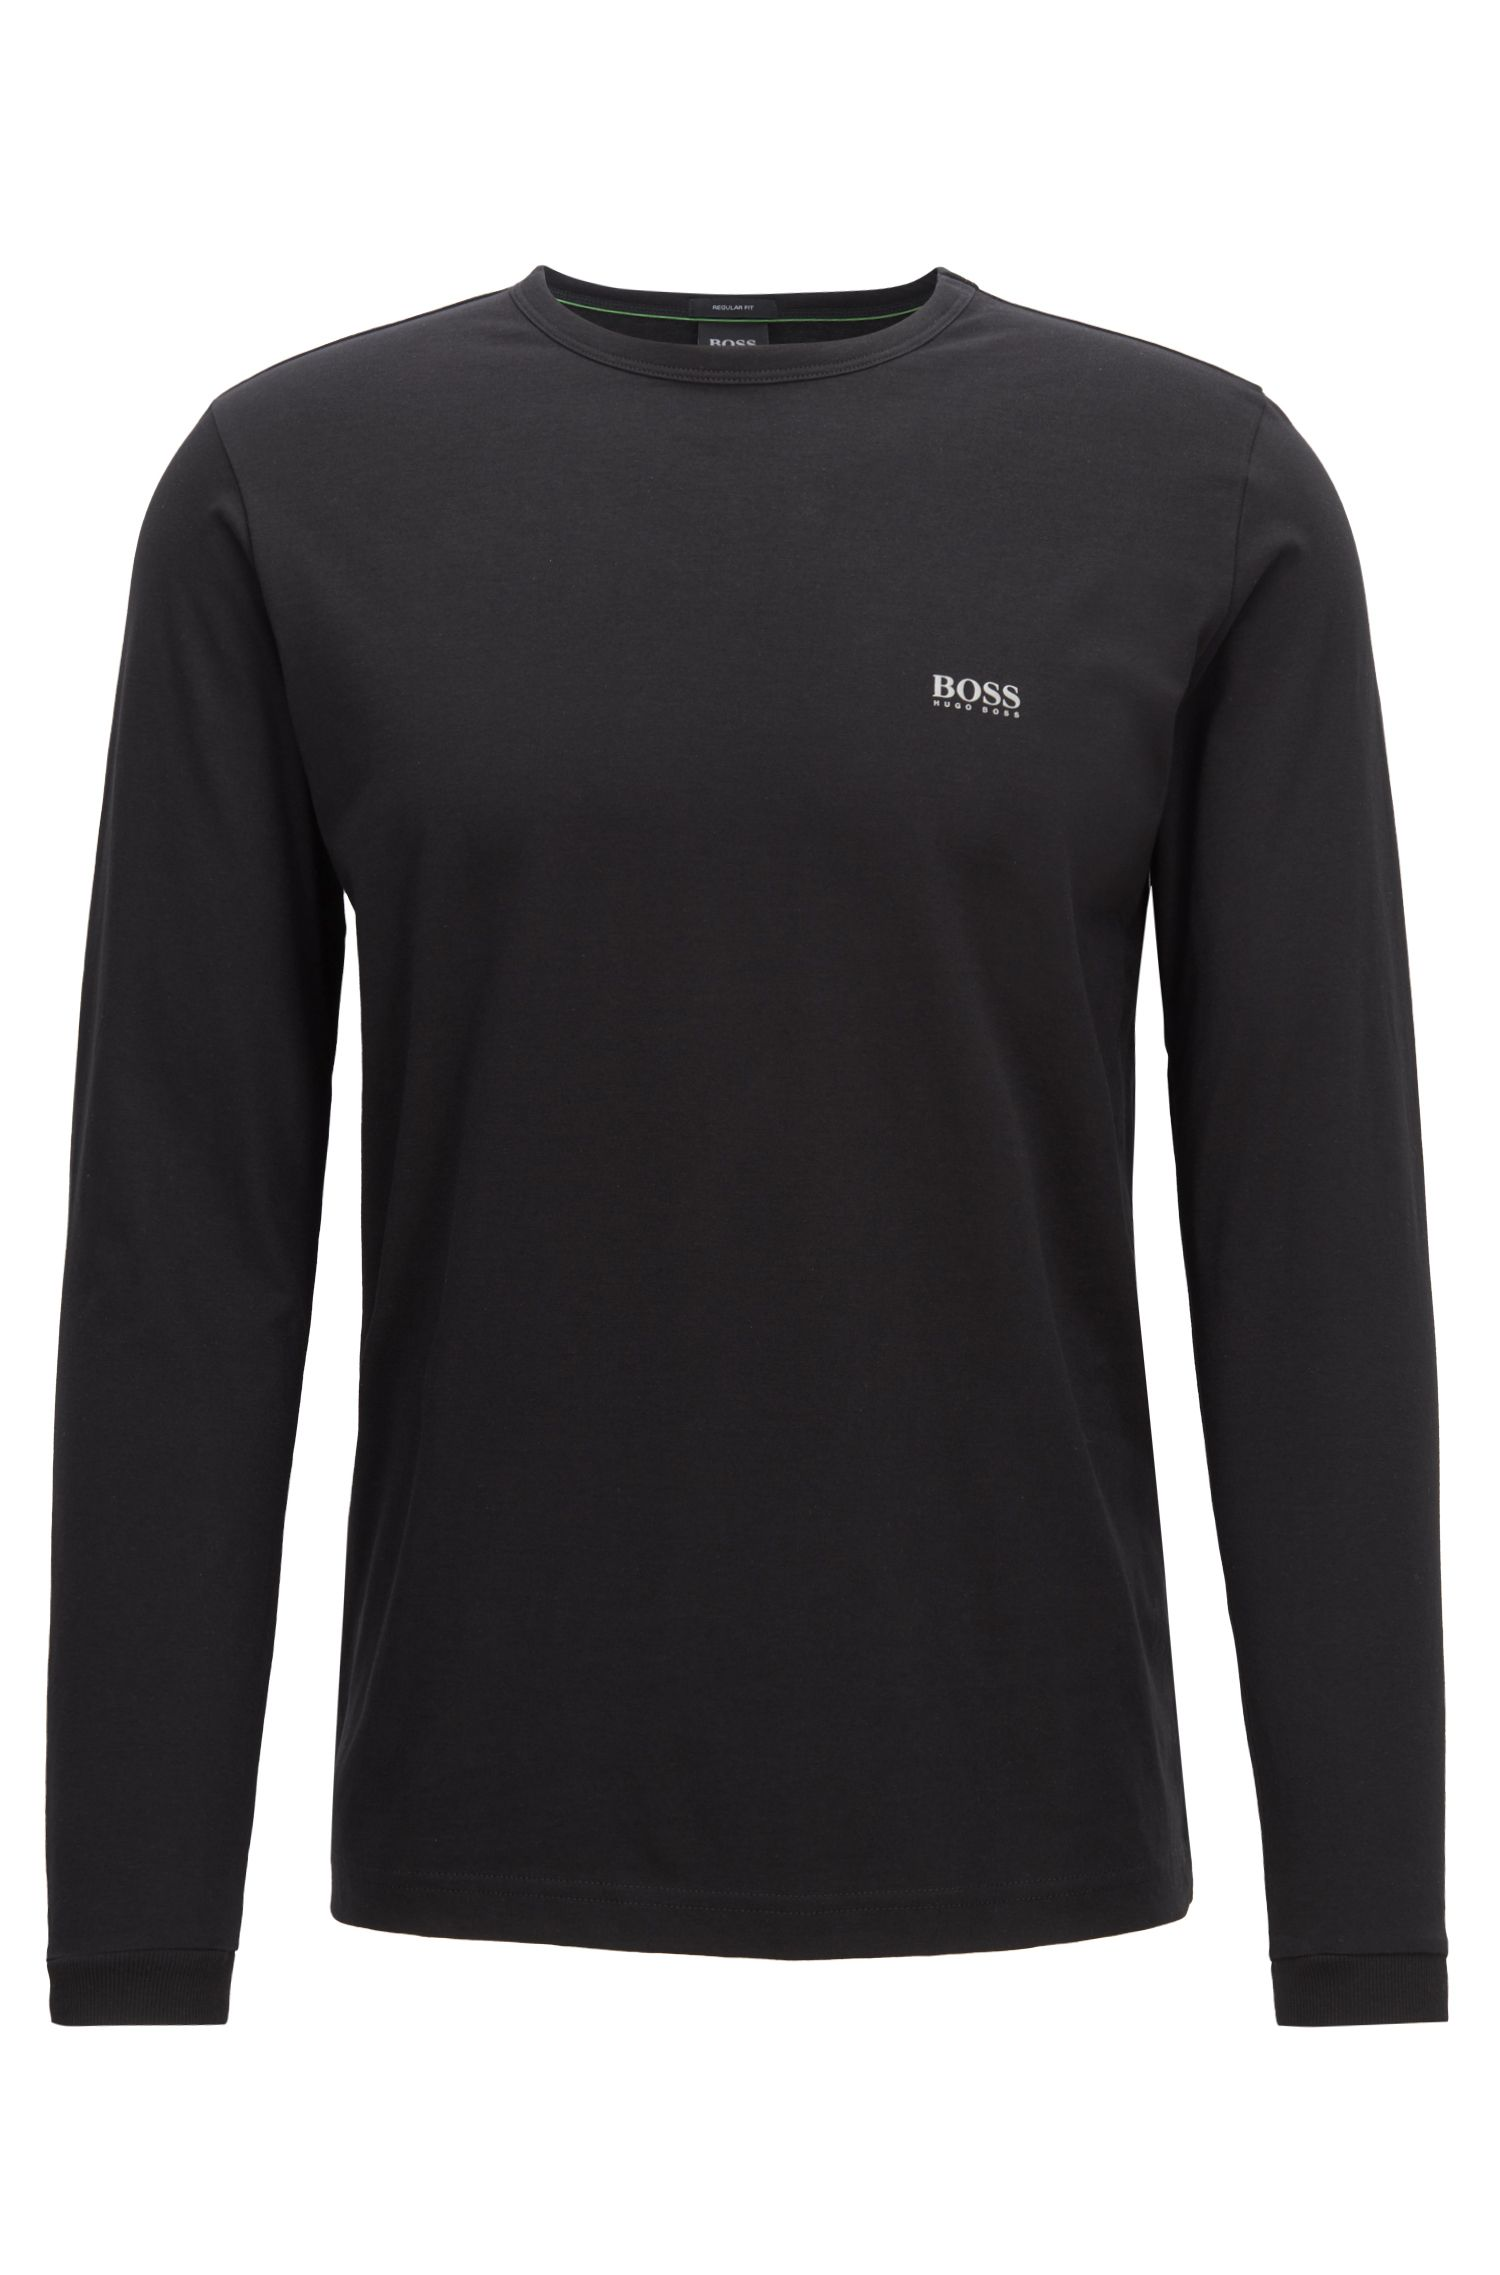 Long-sleeved cotton T-shirt with shoulder logo